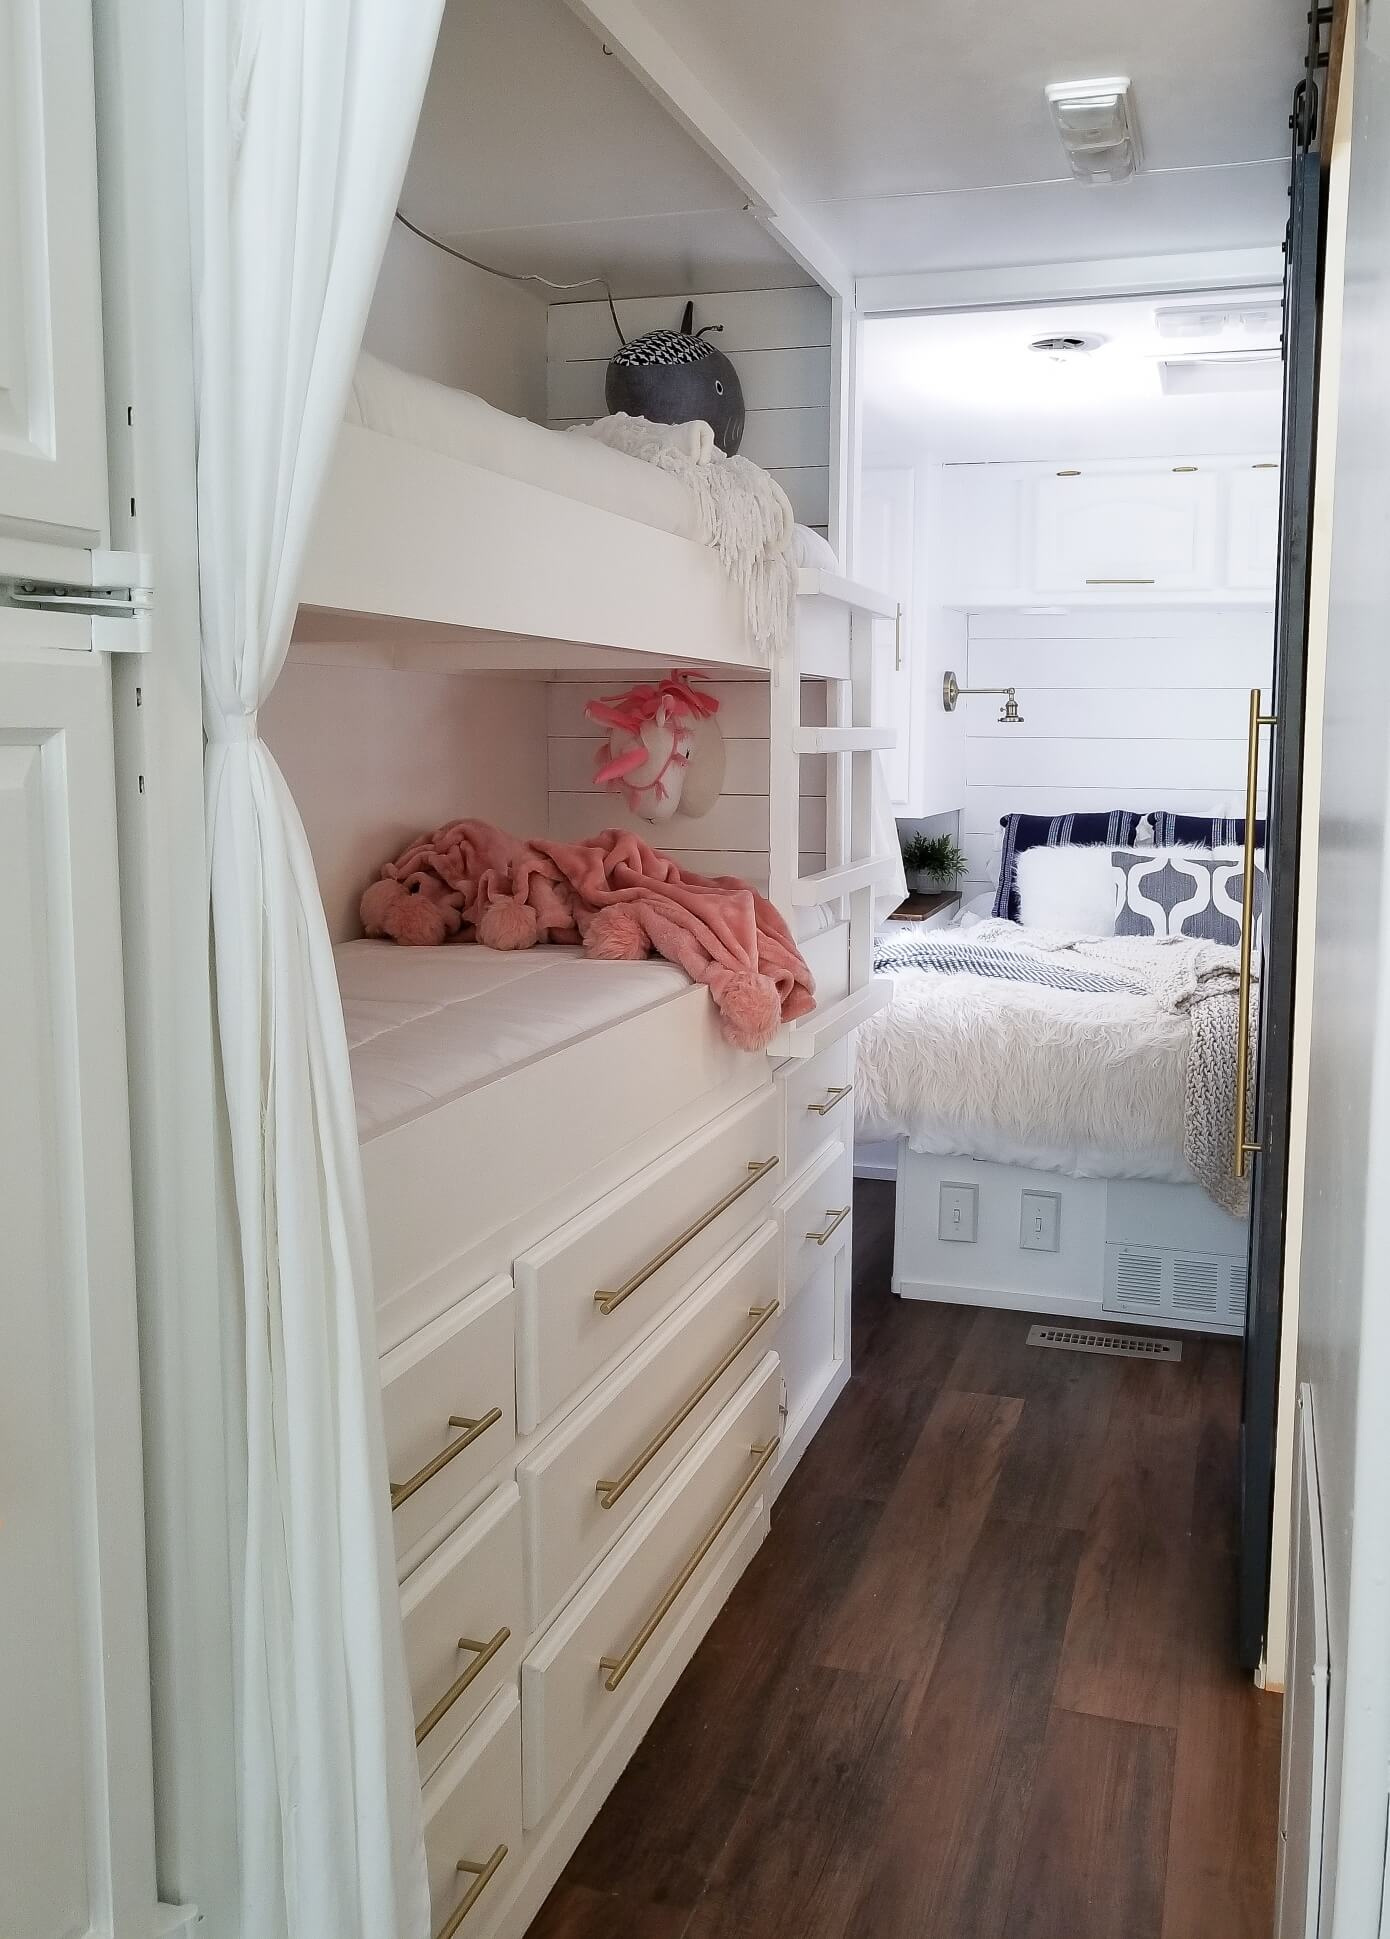 Renovated RV bunks and bedroom of remodeled motorhome